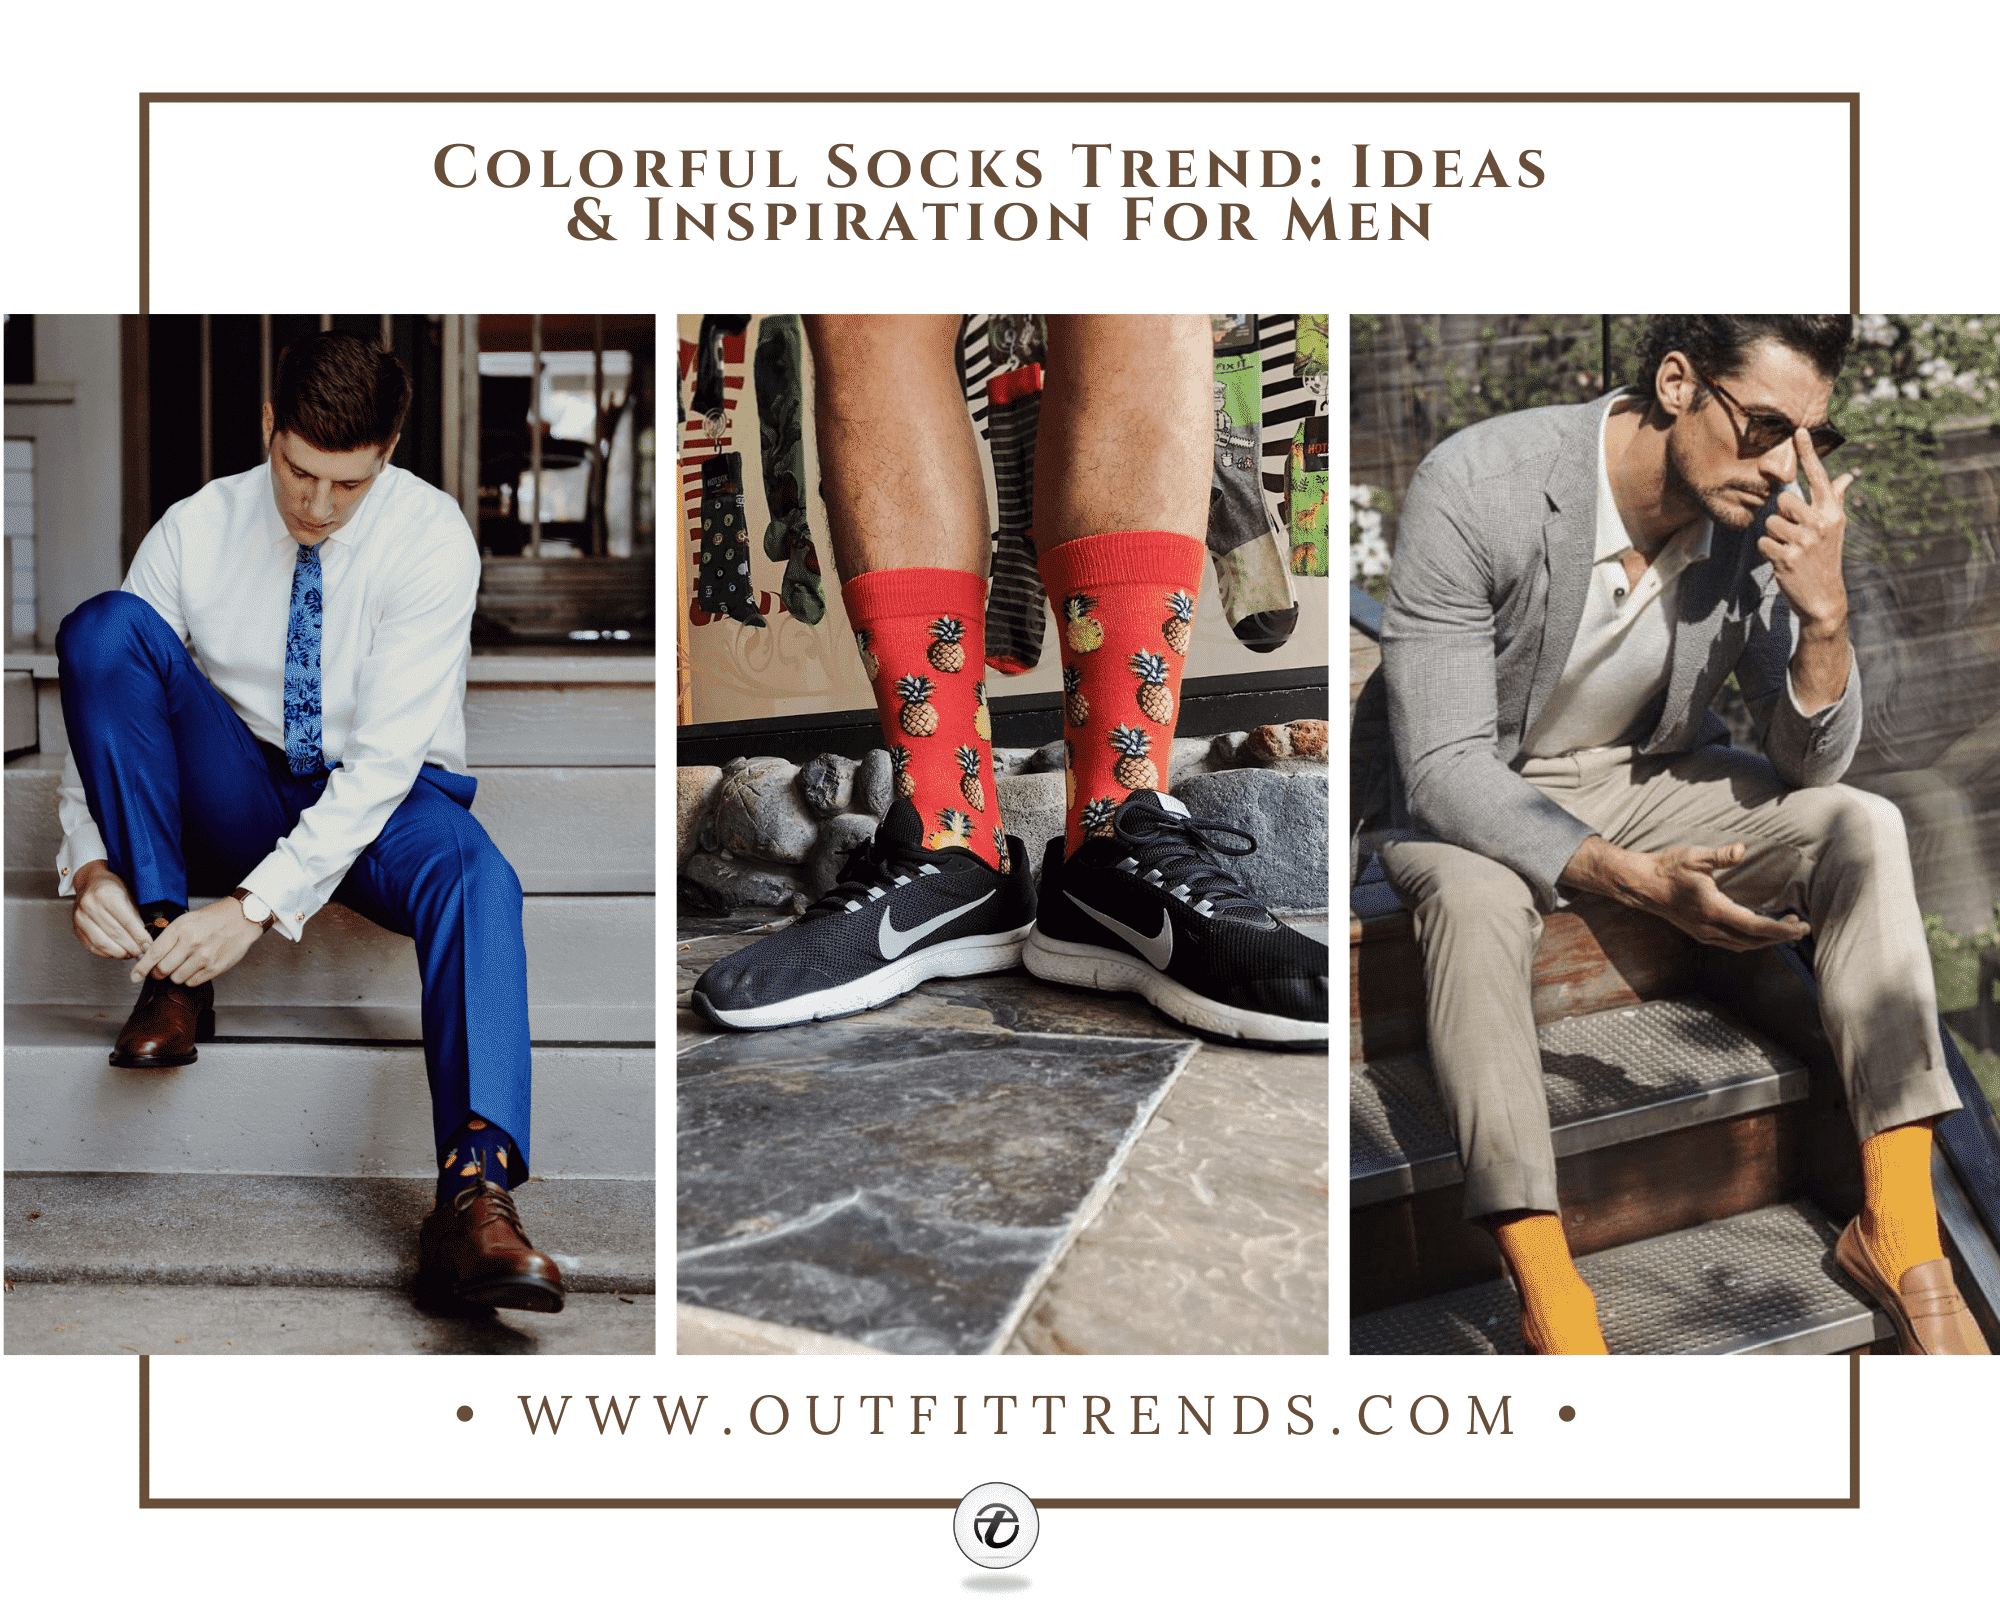 25 Ideas on How to Wear Funky Colorful Socks for Men